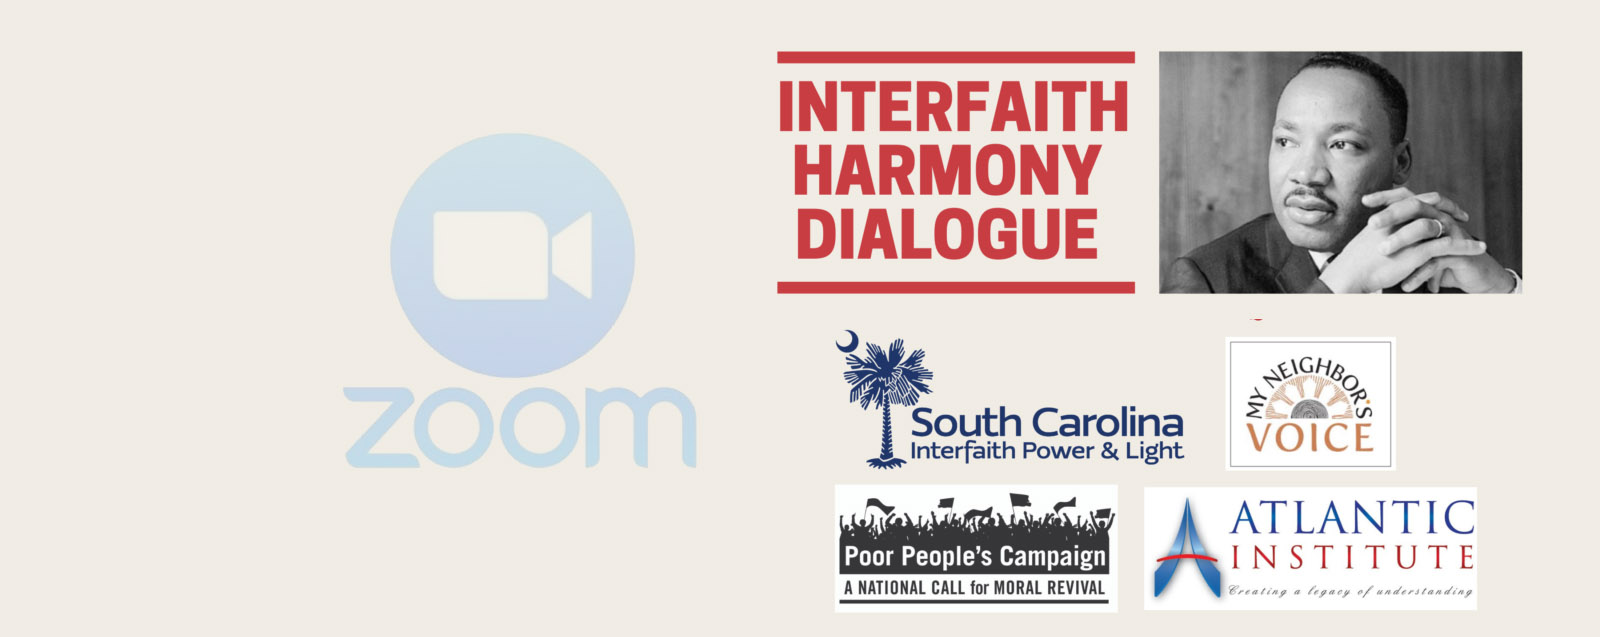 join us for an empowering, interfaith virtual dialogue event.